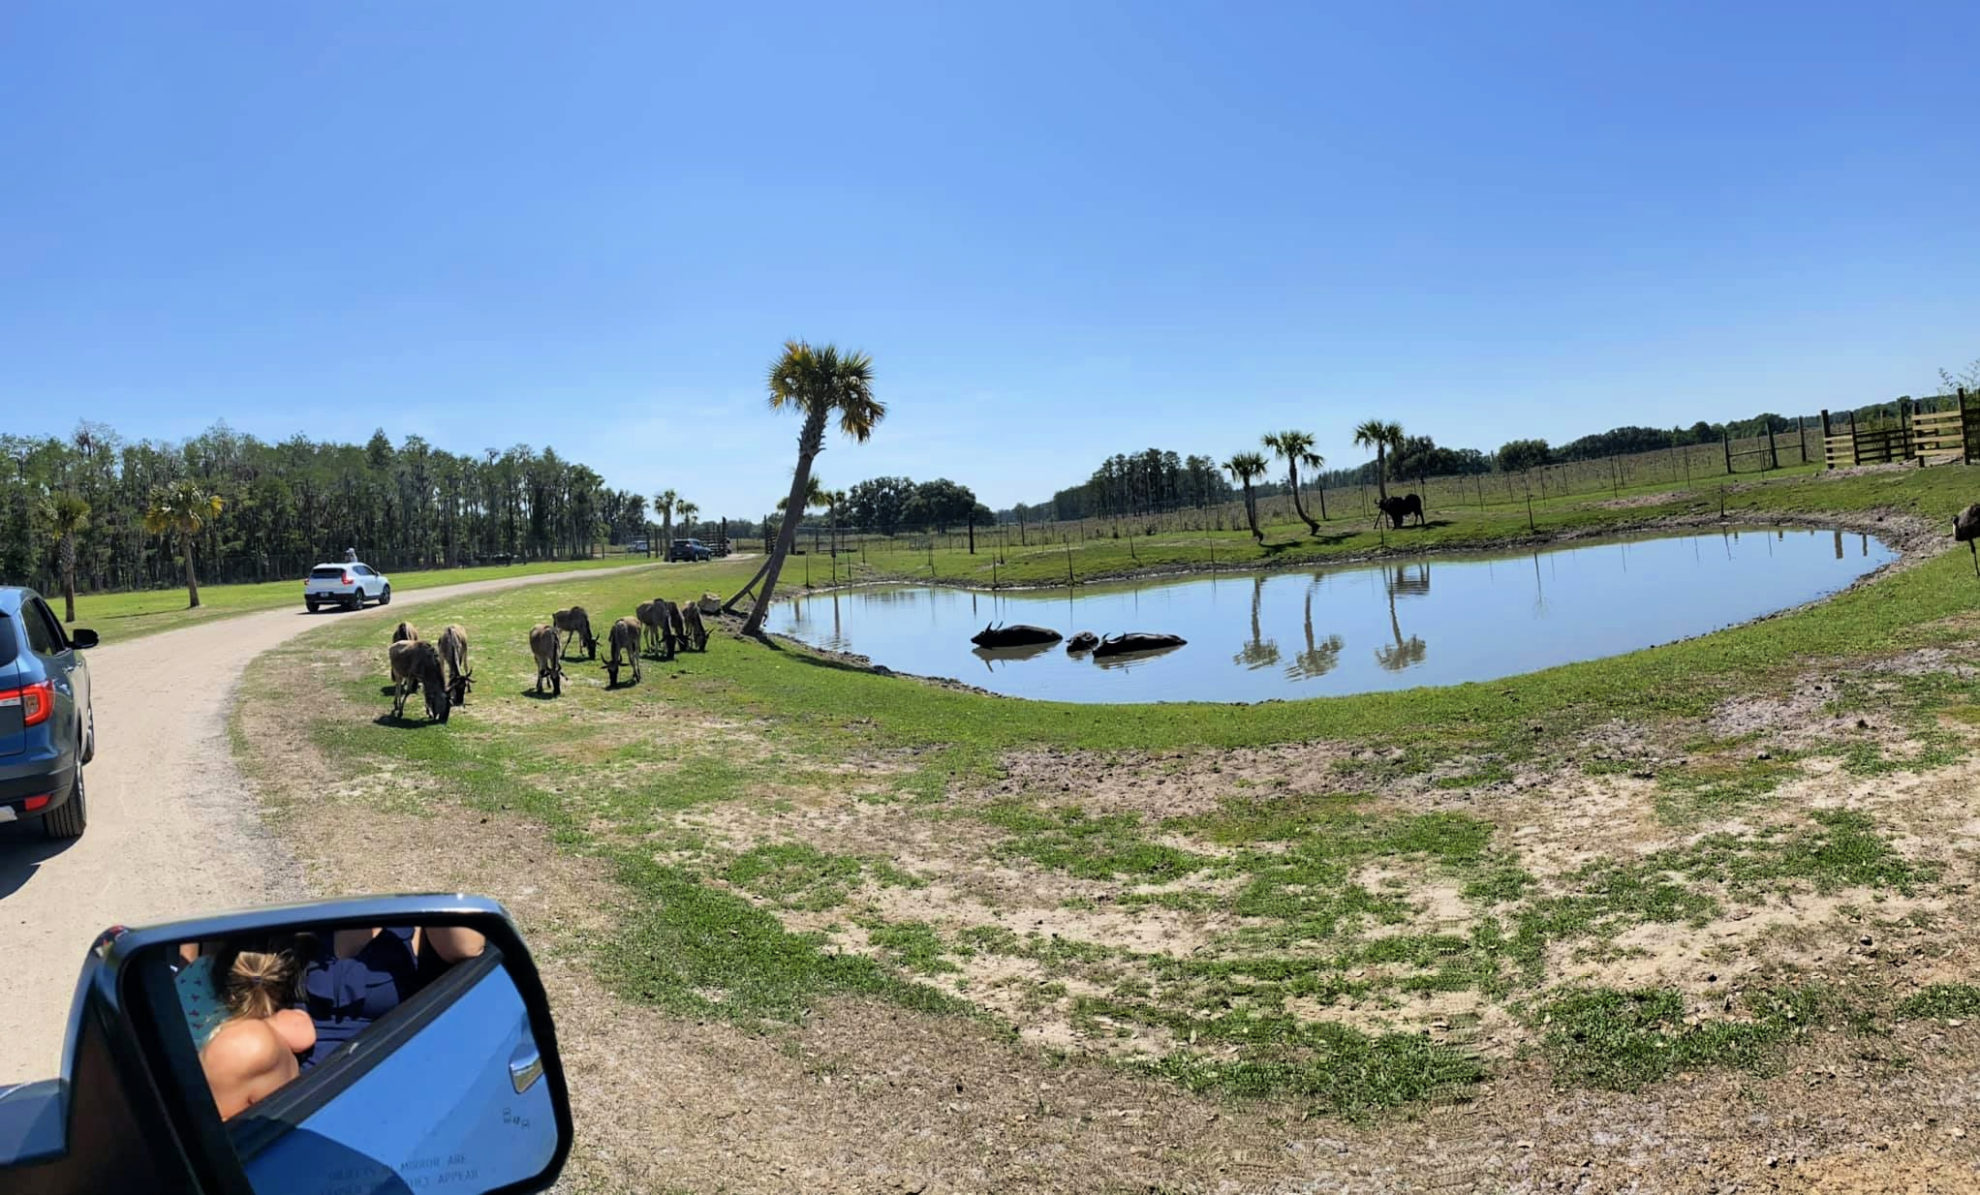 Water Buffalo in the water at Wild Florida Drive-Thru Safari Park